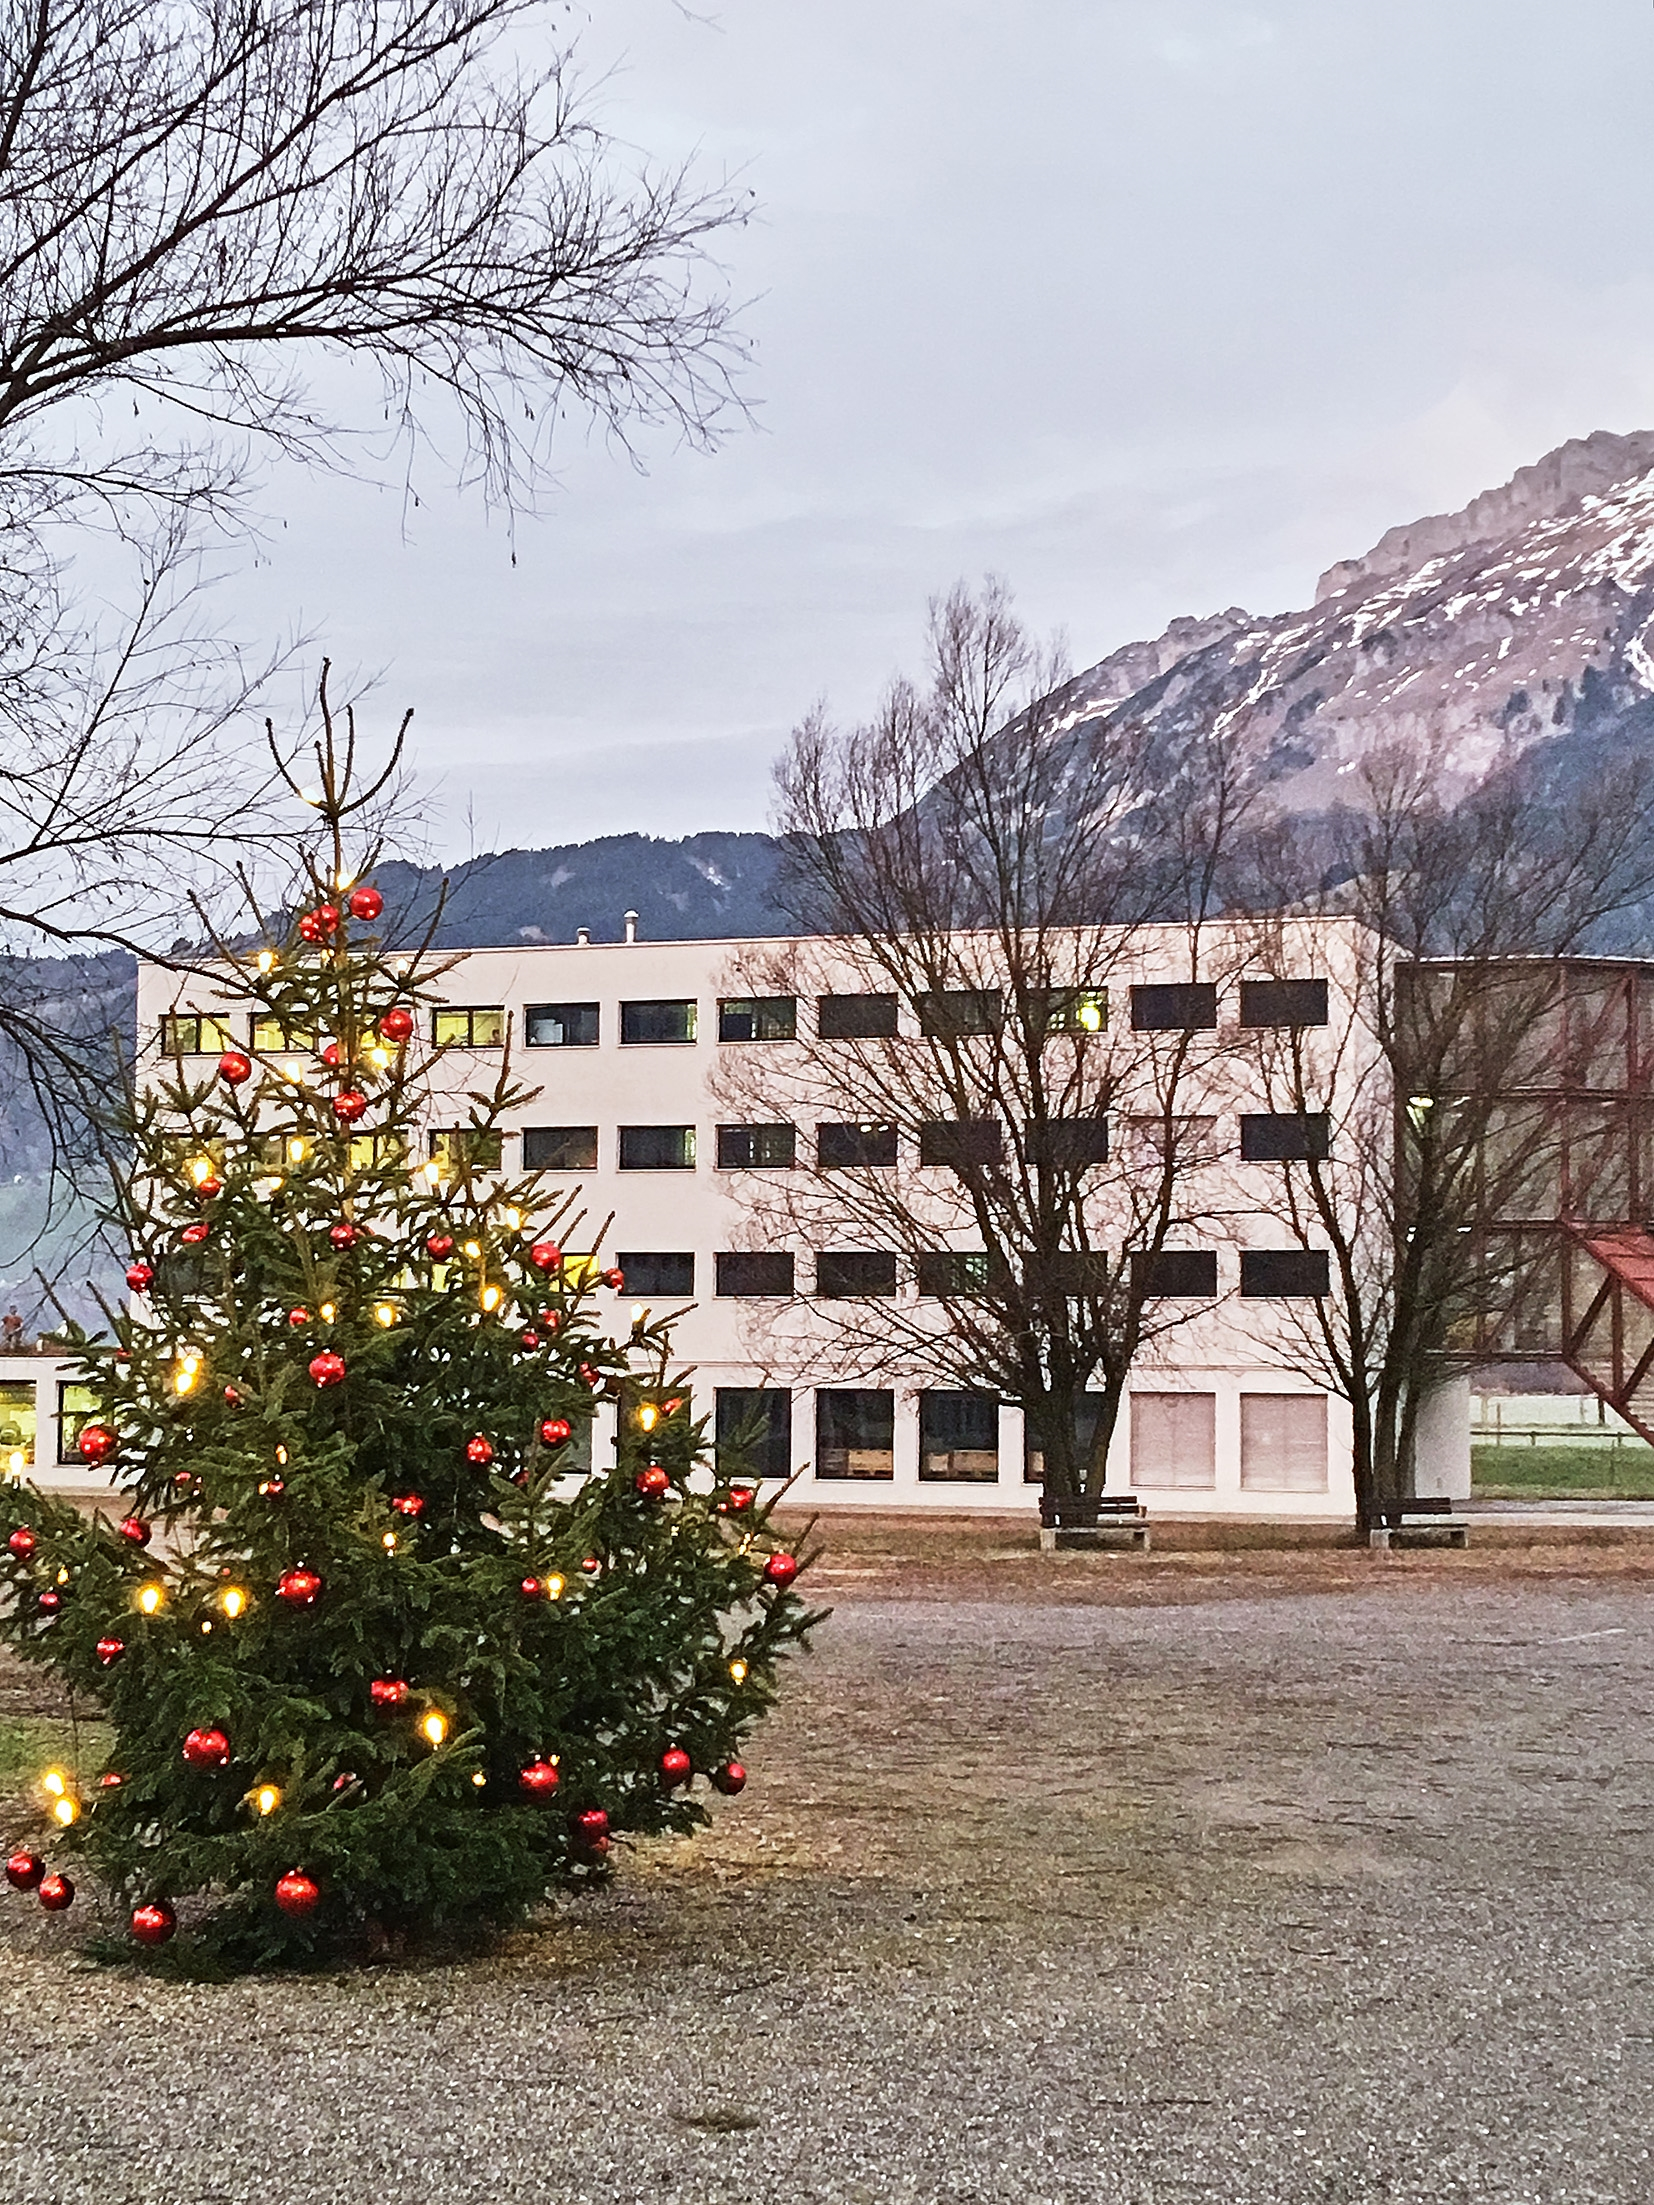 Christbaum vor der Strafanstalt Saxerriet in Salez